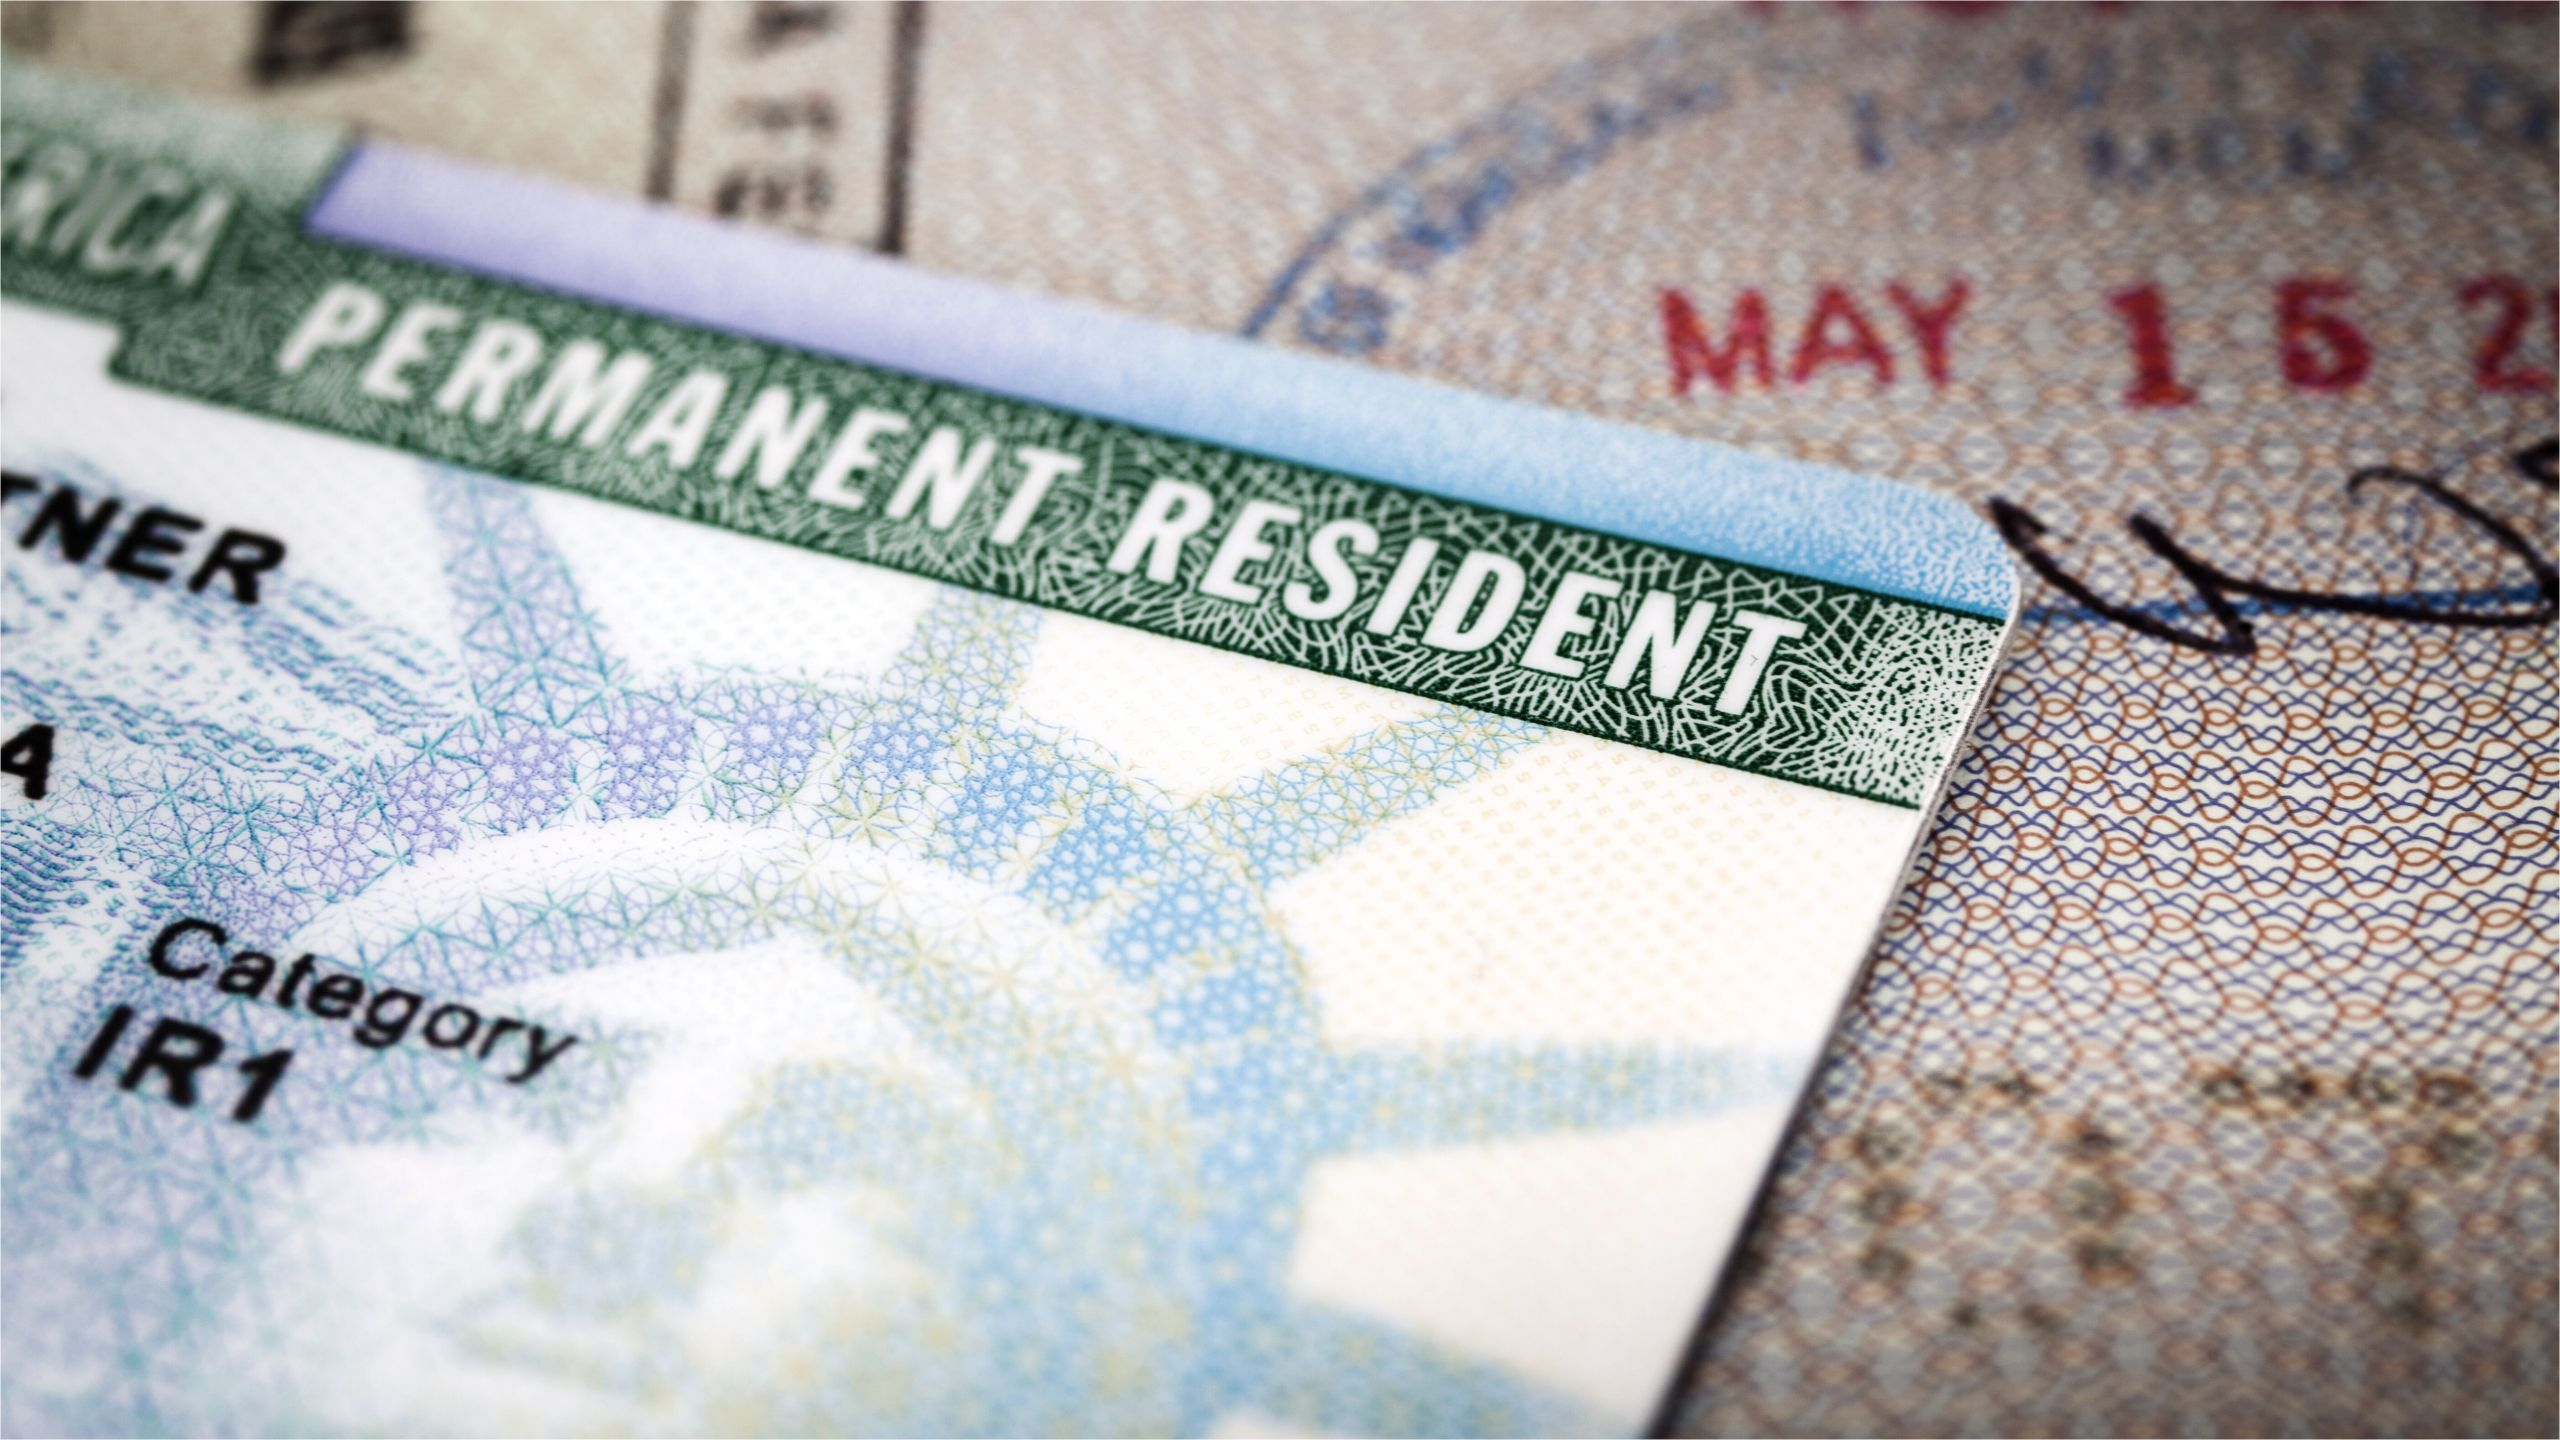 a green card lying on an open passport close up full frame 187591458 5aa6c5caa9d4f900369f3d3d jpg